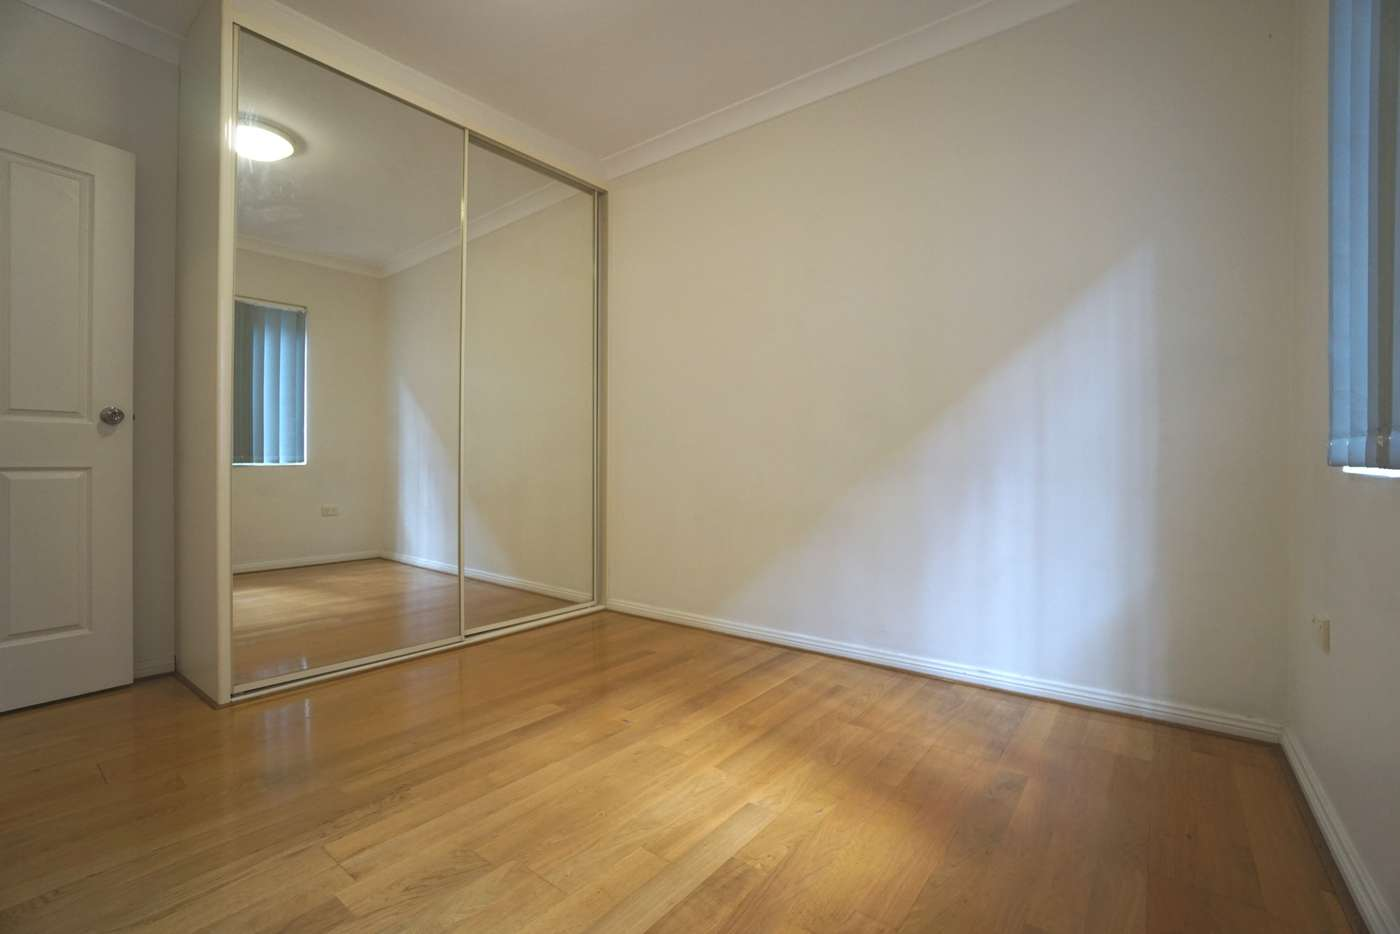 Sixth view of Homely apartment listing, 5/51-57 Buller Street, North Parramatta NSW 2151